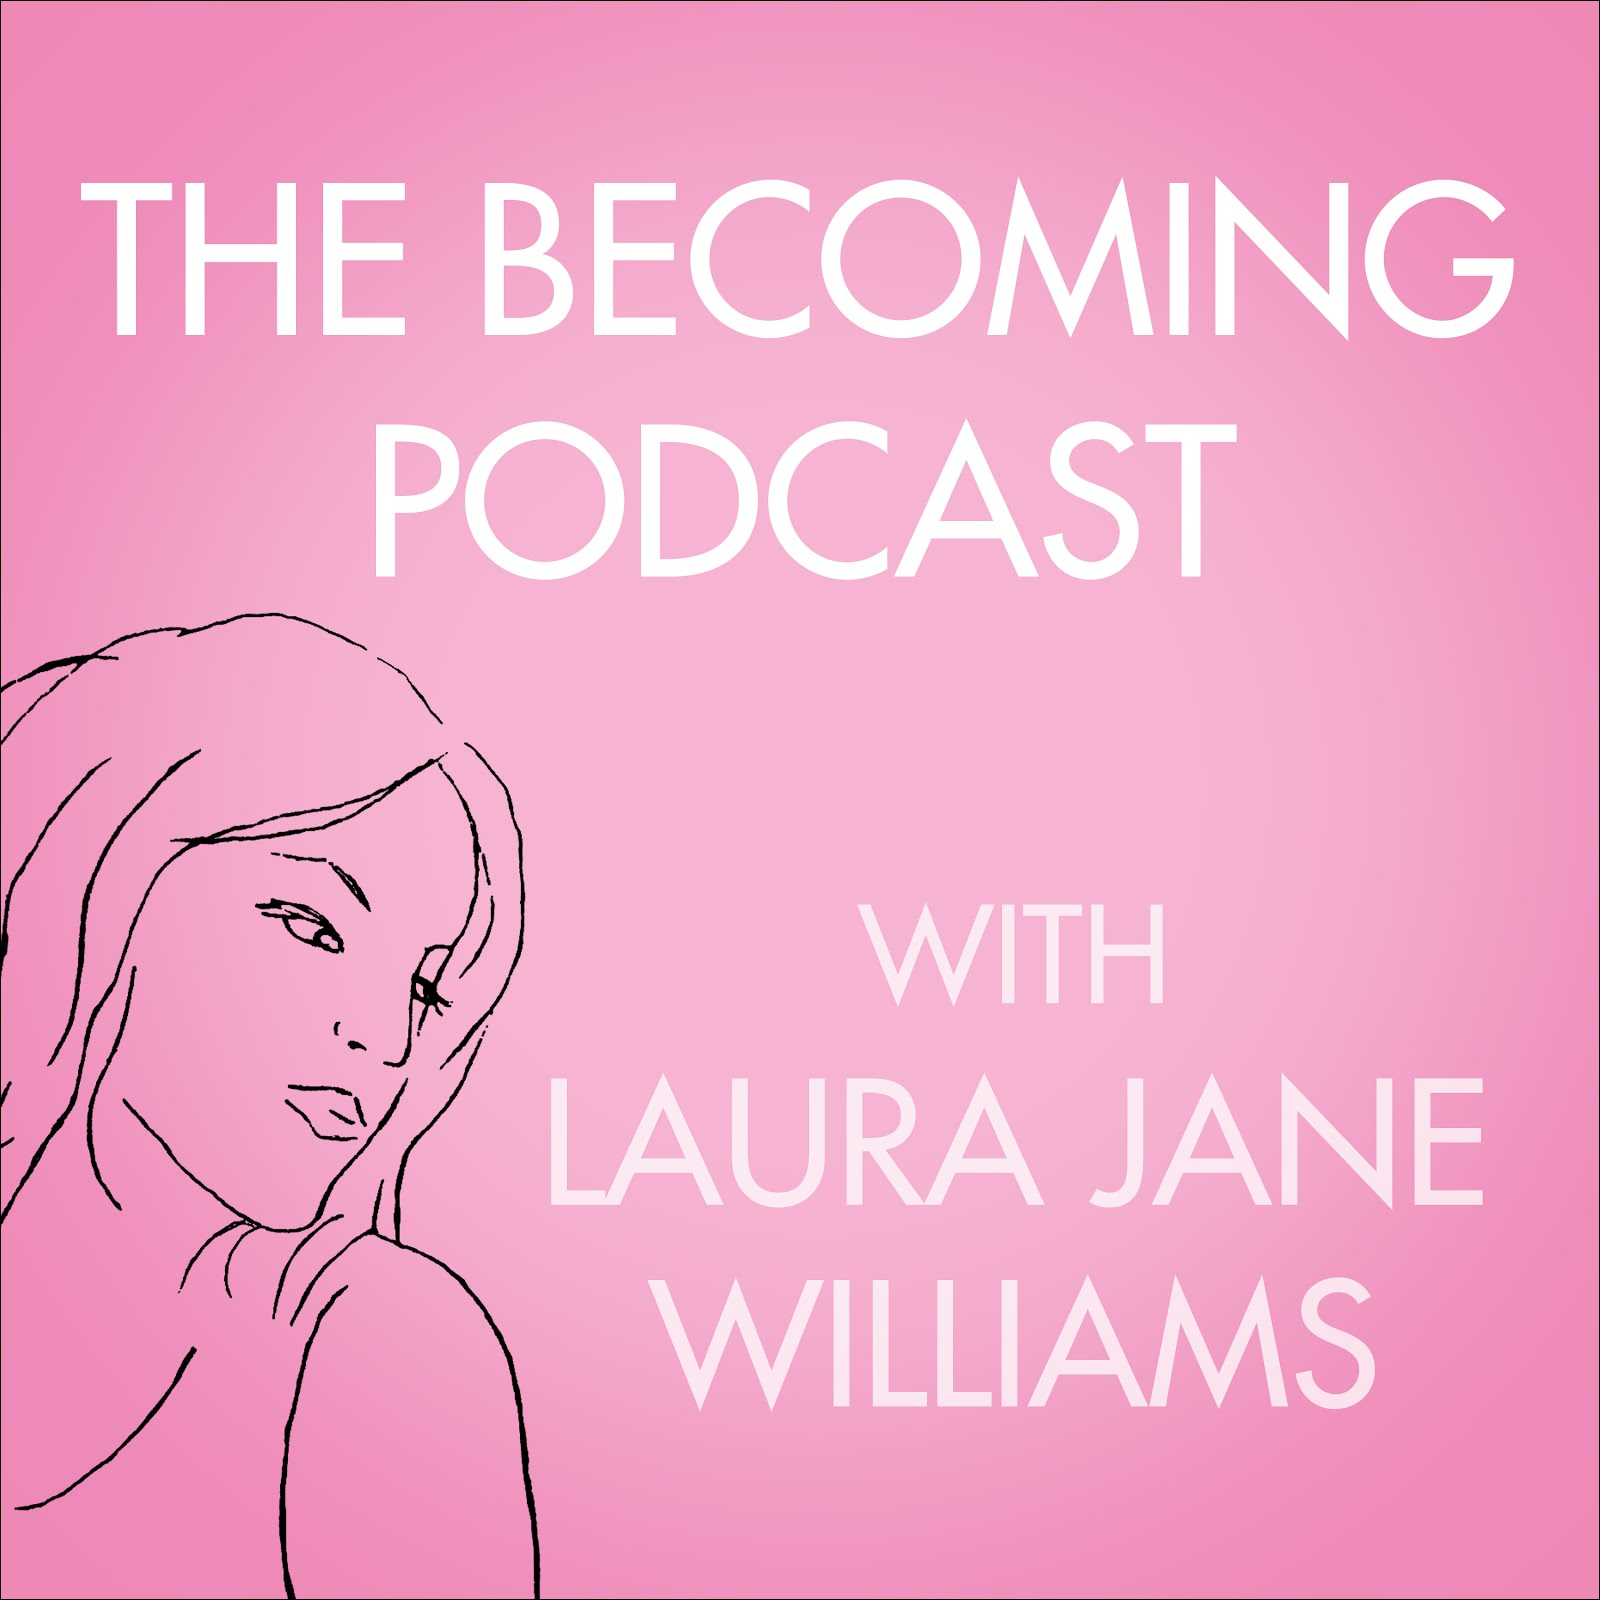 The Becoming Podcast